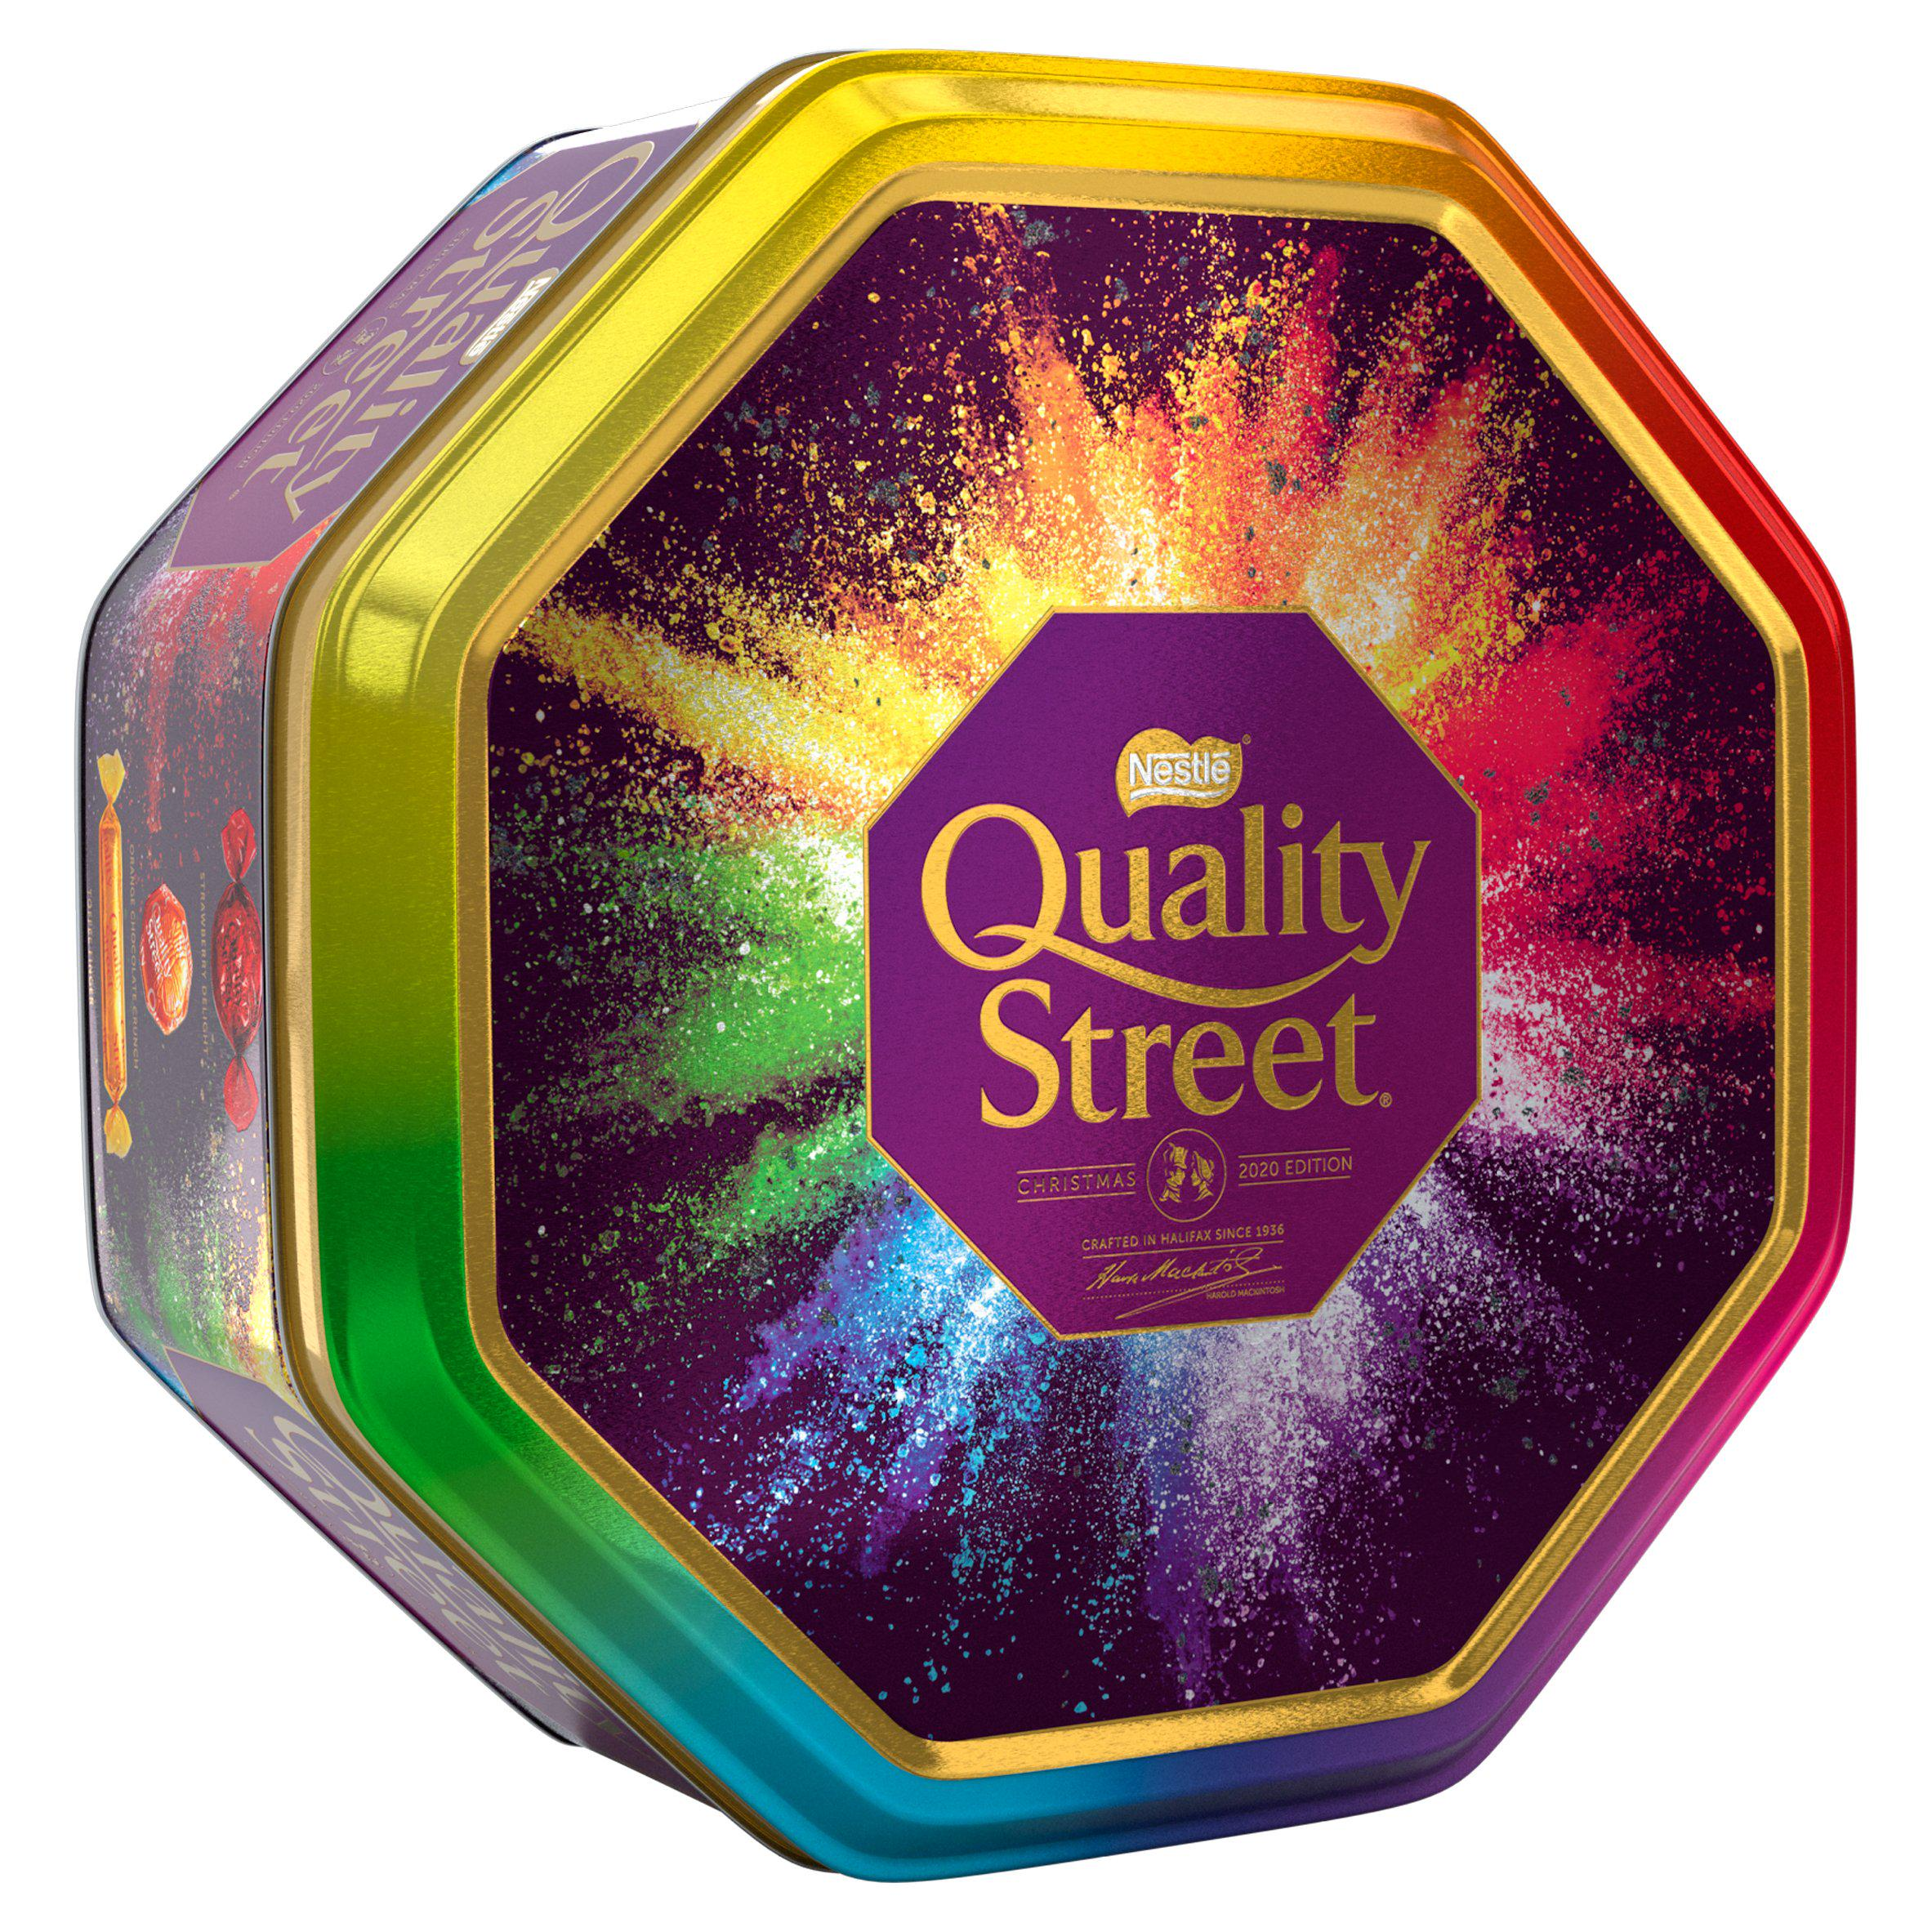 Nestlé UK Quality Street Chocolate & Toffee Tin 1kg